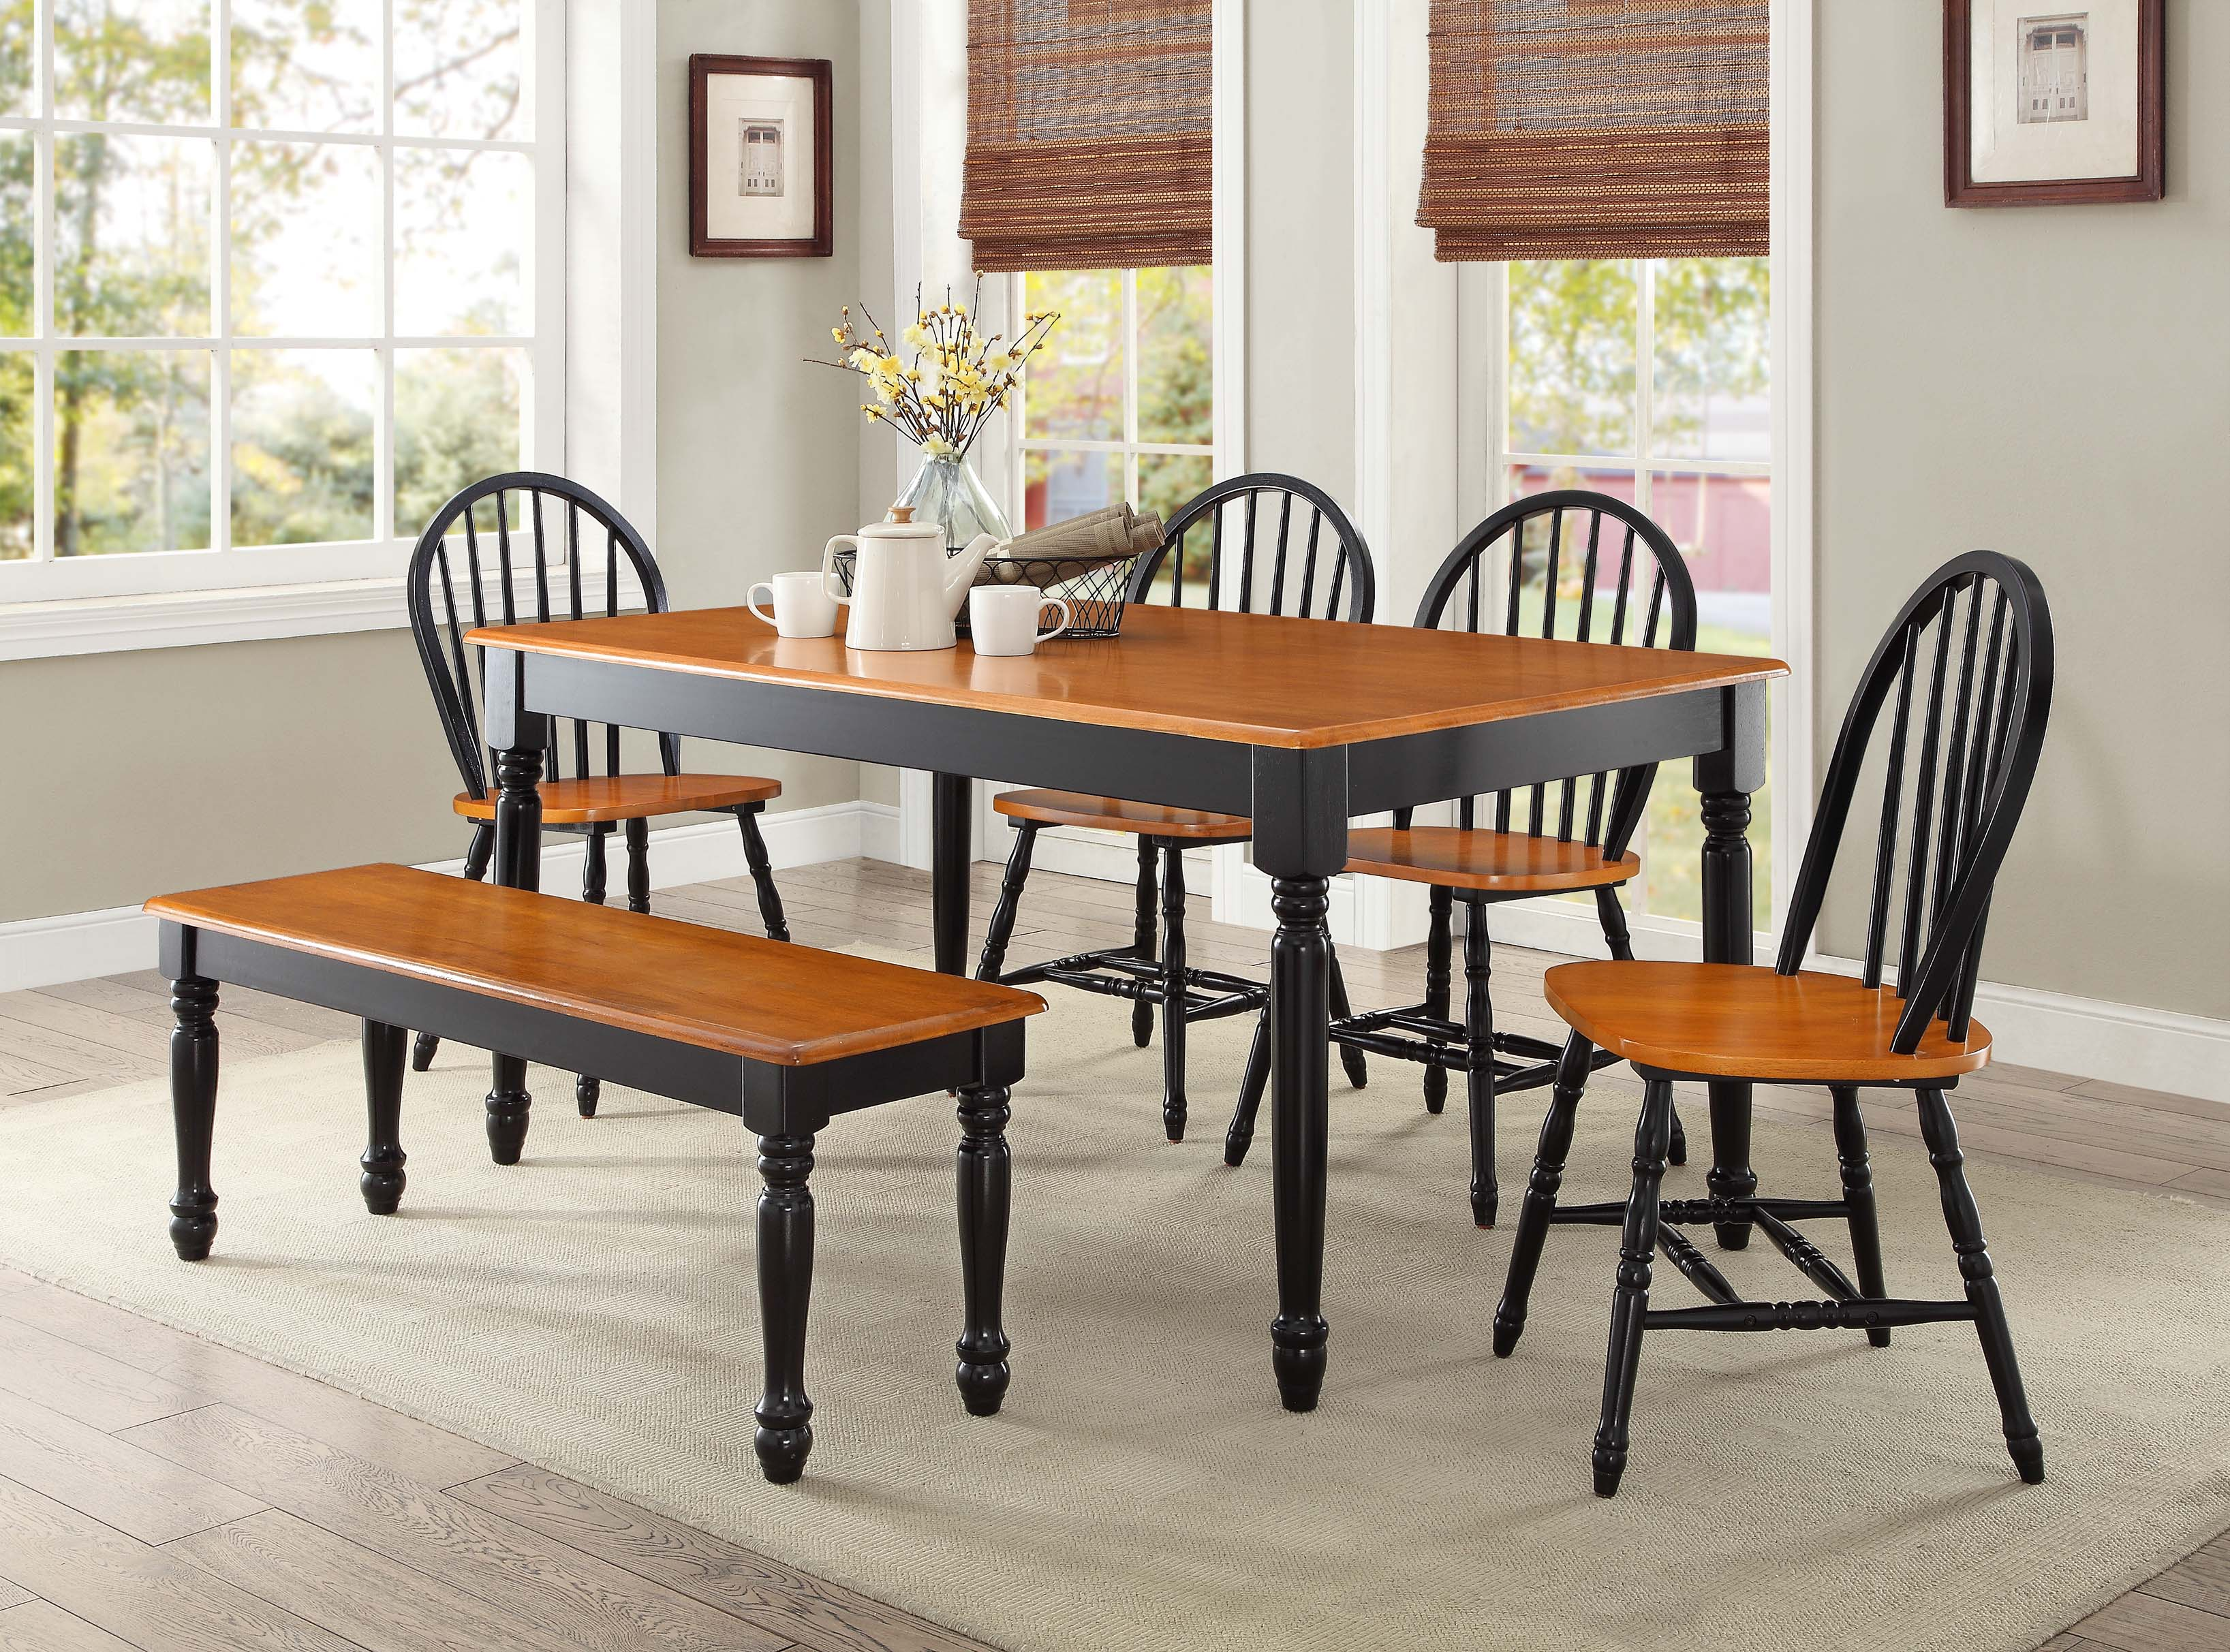 Modern High Kitchen Table kitchen & dining furniture - walmart